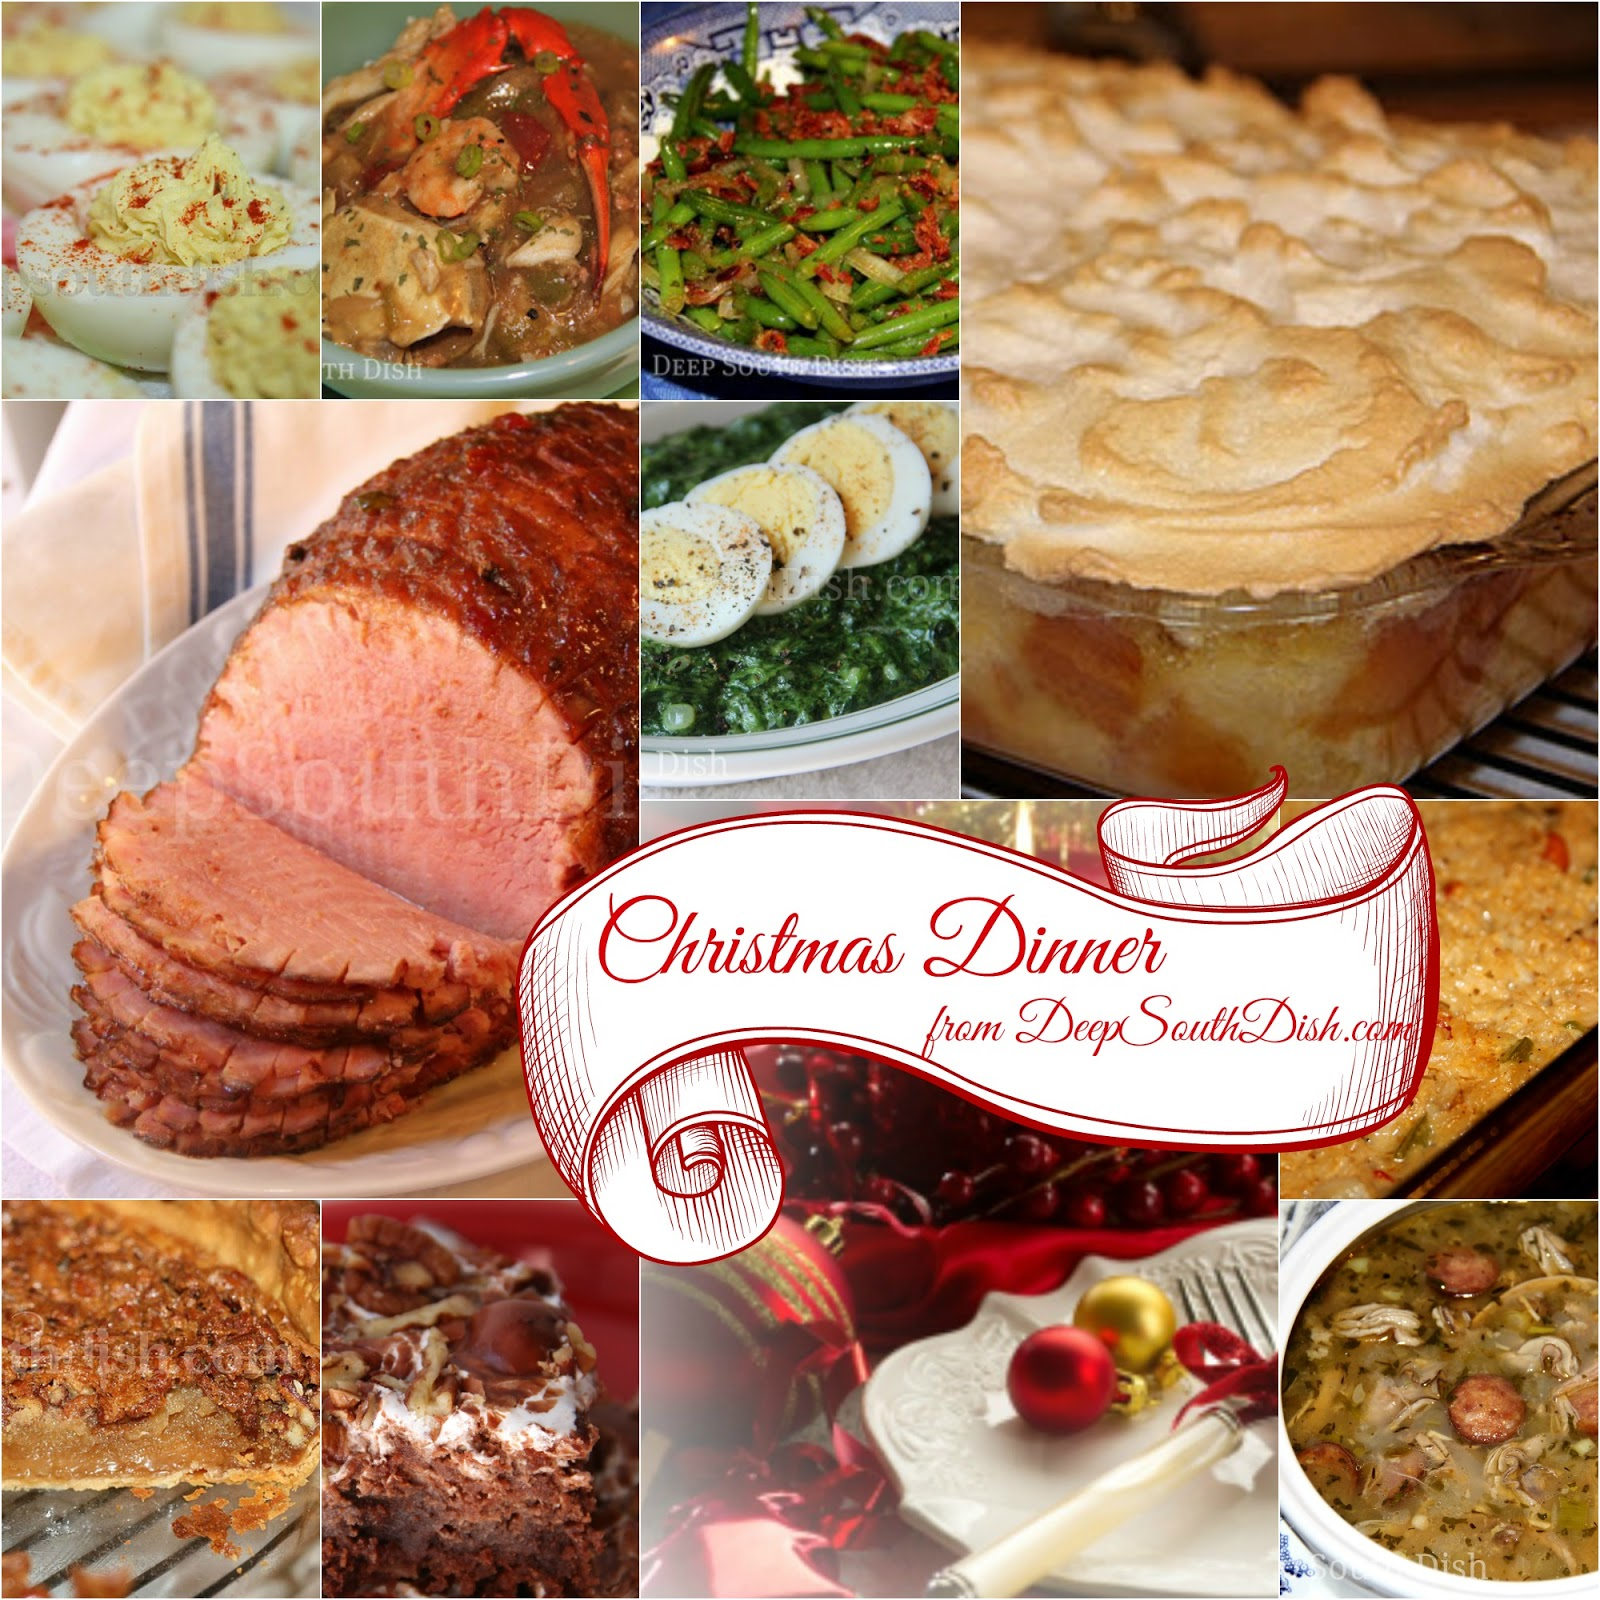 deep south dish southern christmas dinner menu and recipe